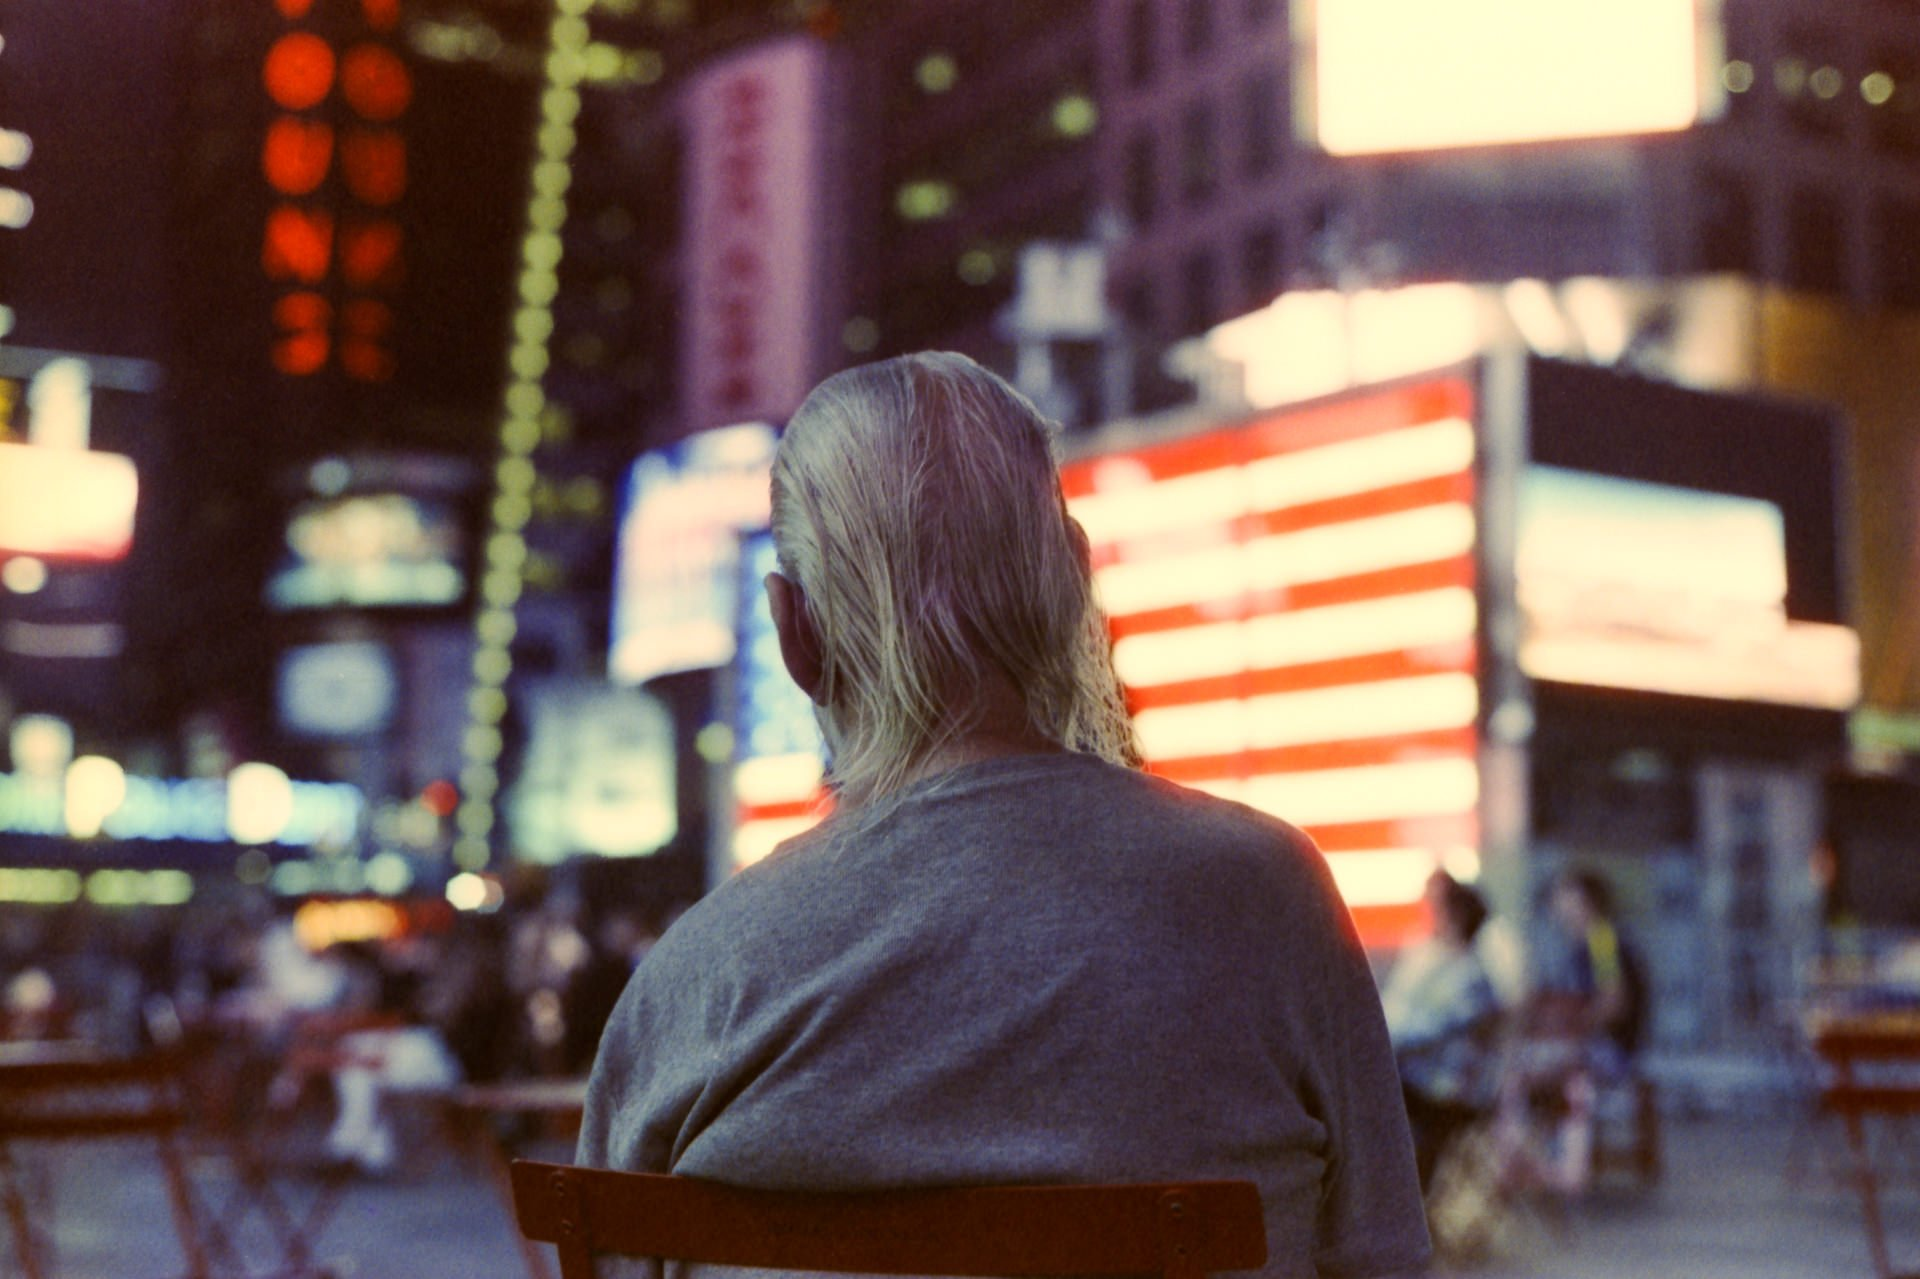 Cinestill 800T – Street Film Photography – New York